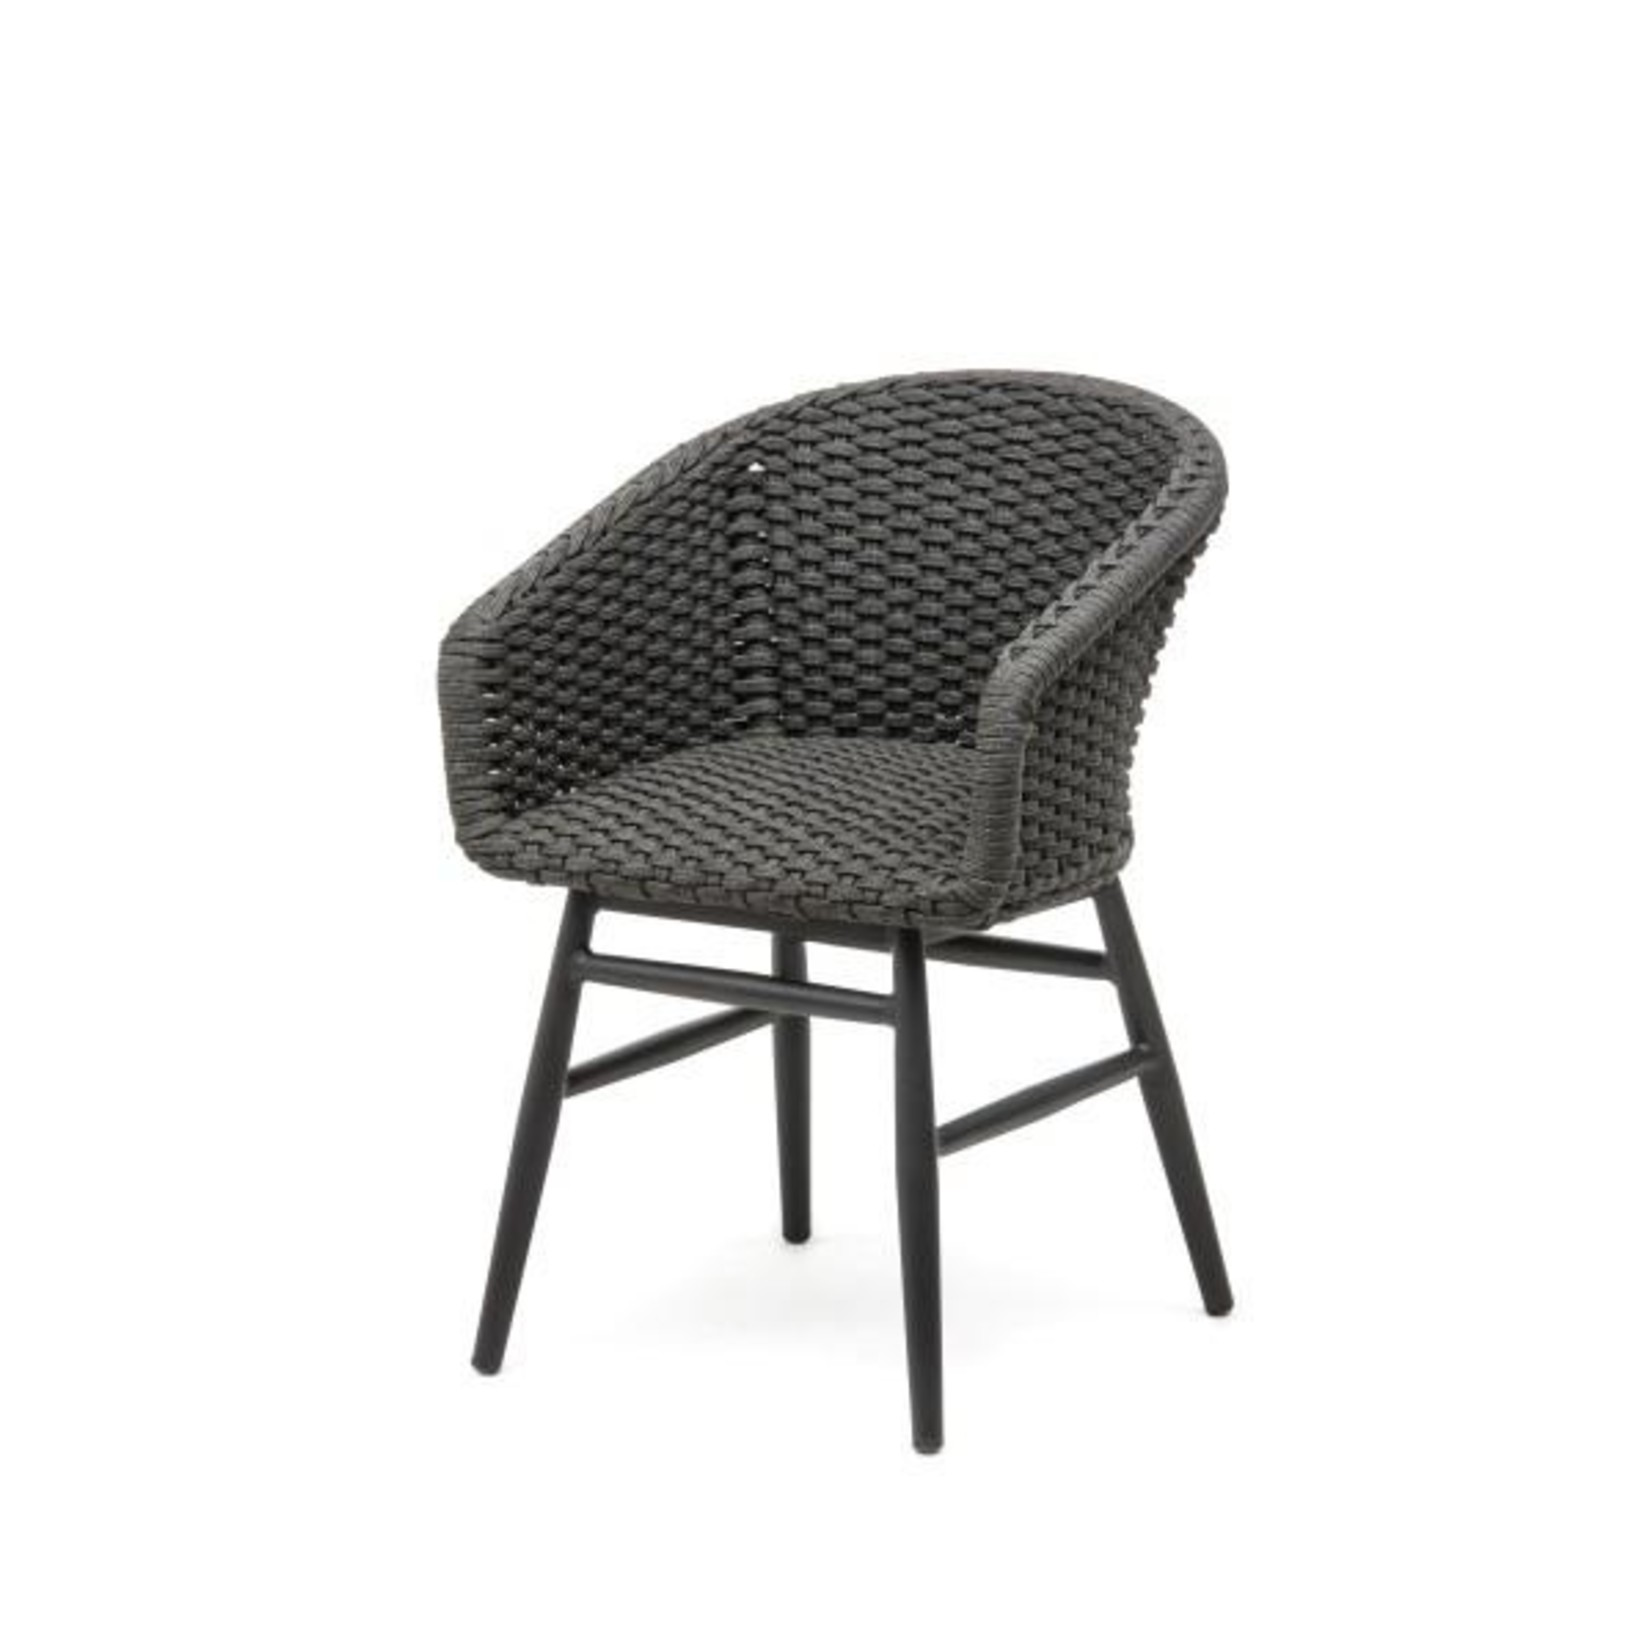 Gommaire Armchair Charly | Aluminium Frame Matte Black / Rope (Quick Dry Foam Seat Inside)